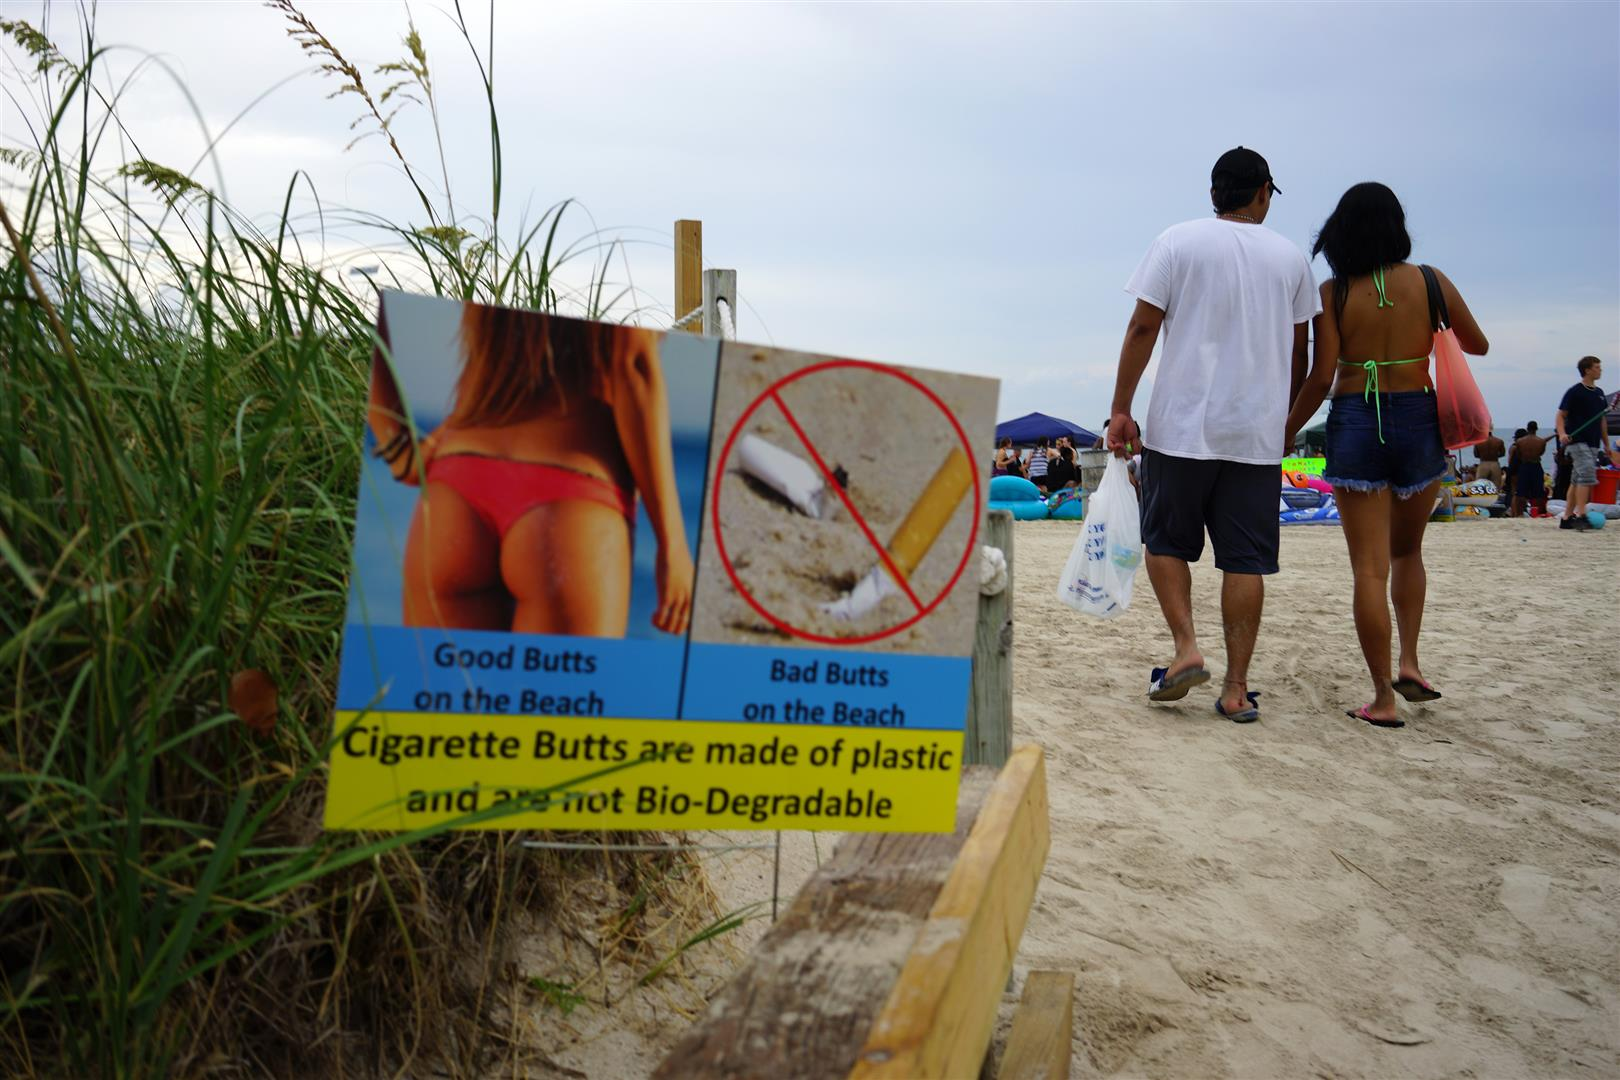 Cig_Butts_are_Litter_sign_(Large).jpg